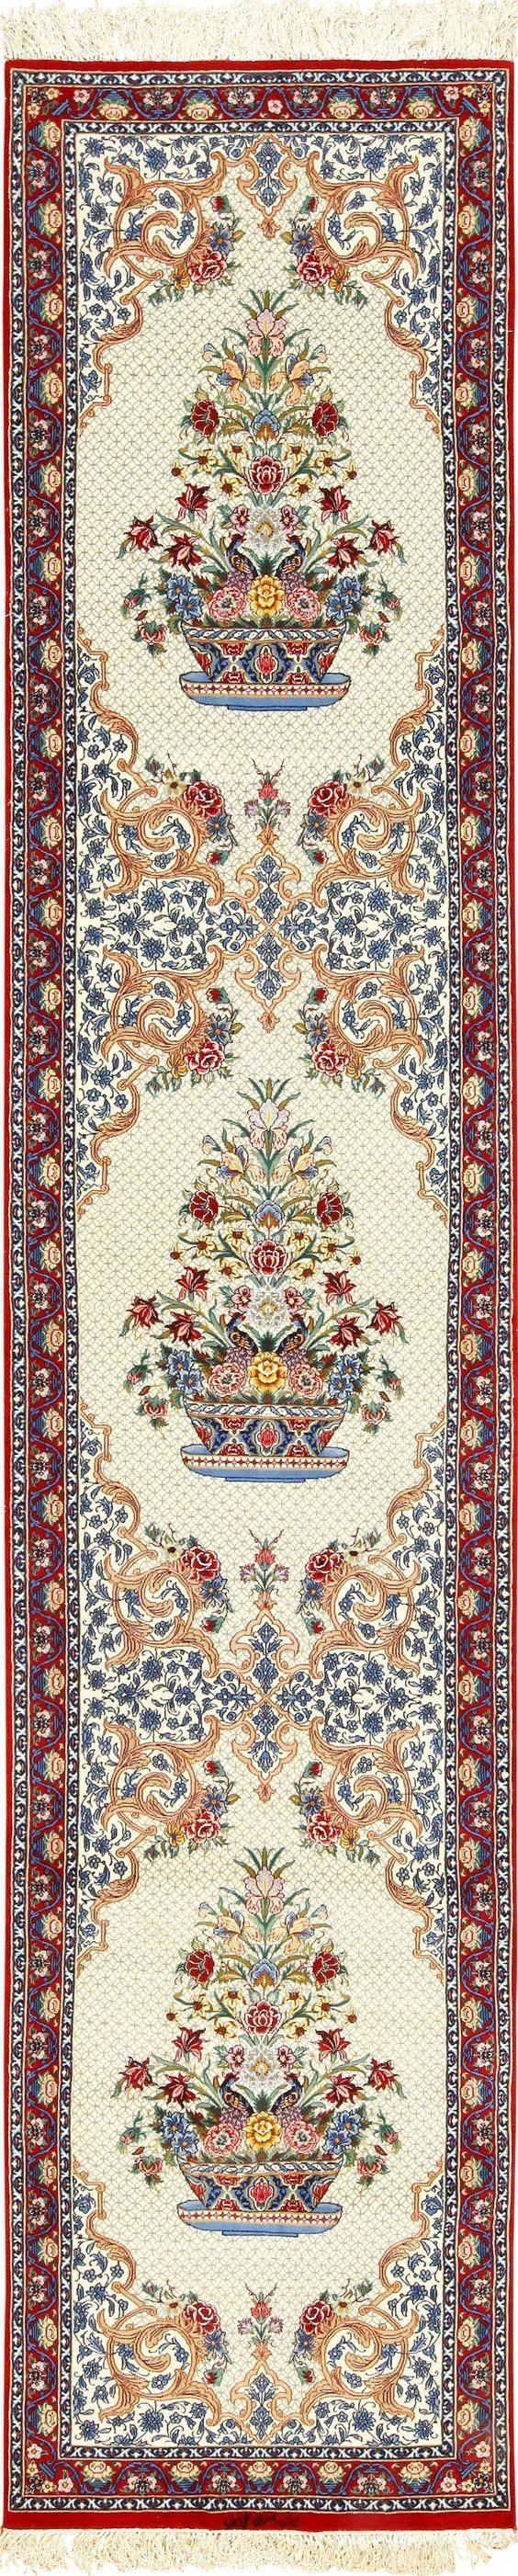 Best Carpet Runners For Stairs Lowes Carpetrunnersforyachts Id 3182912561 Arazzi Tappeti Decoupage 400 x 300